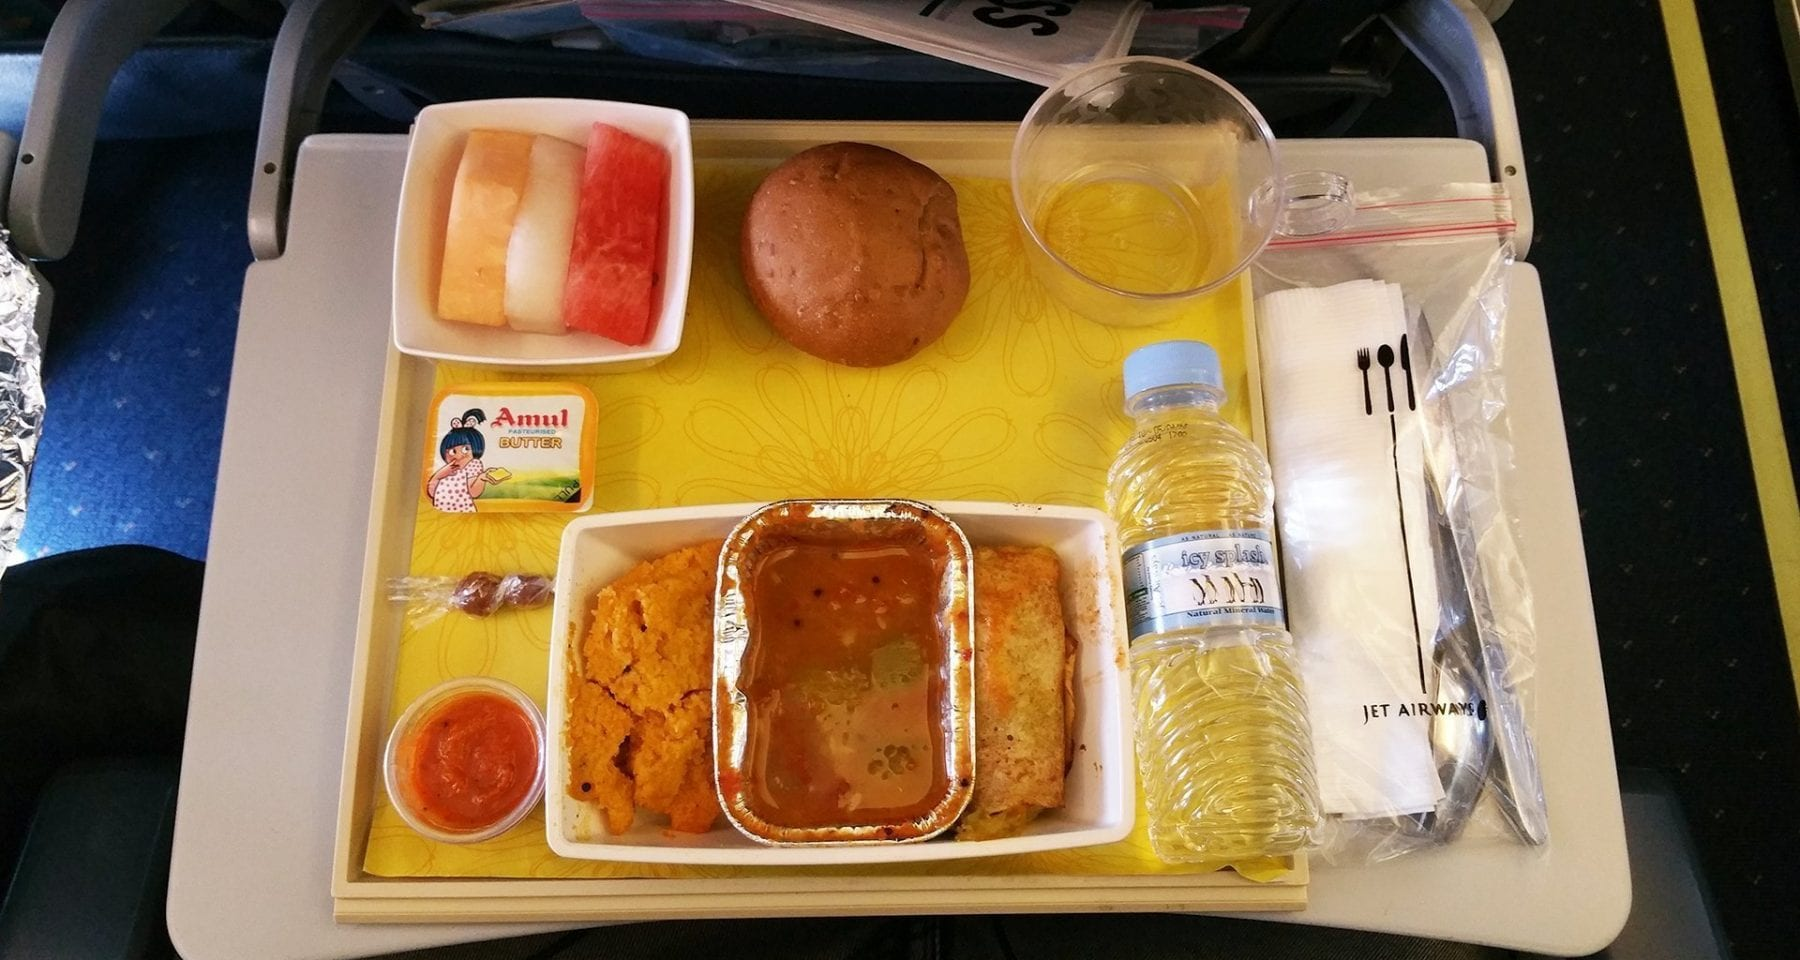 Jet Airways economy class meal